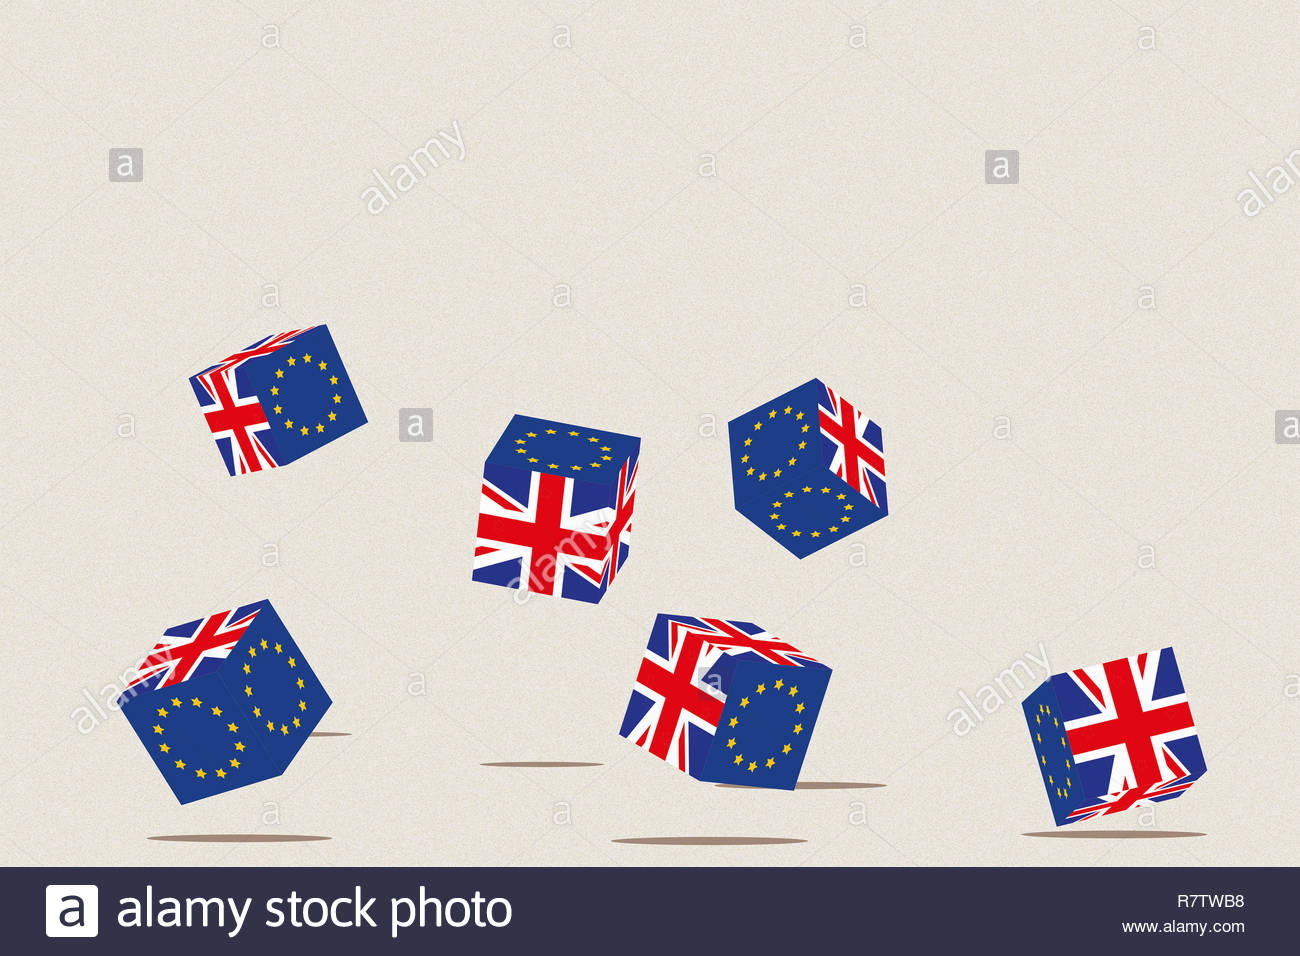 British and European Union flags on tumbling dice - Stock Image